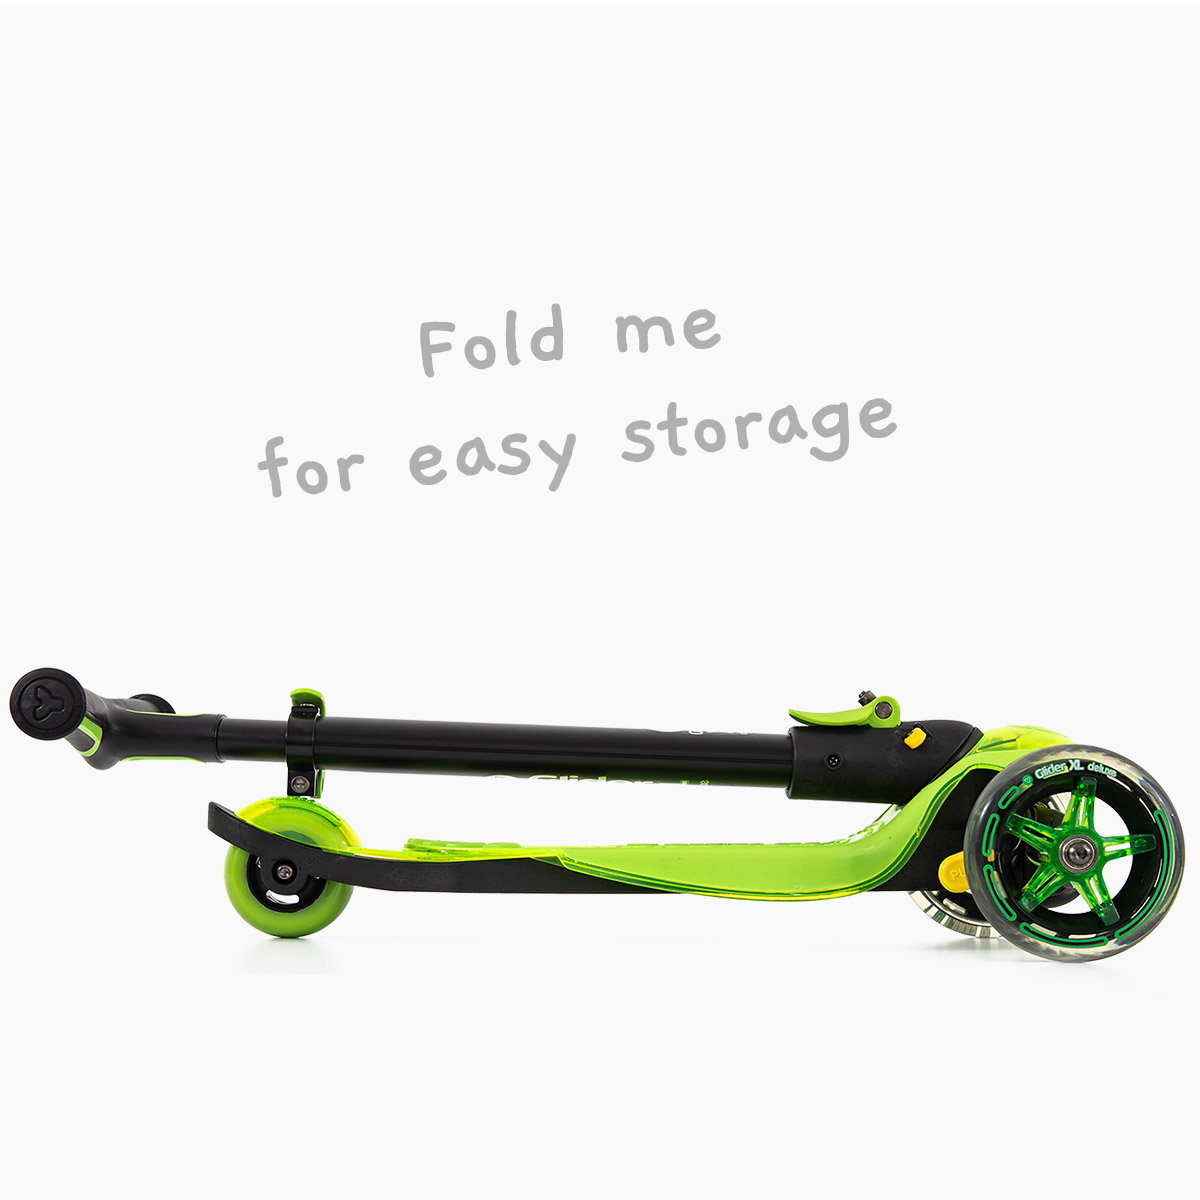 Folding for easy storage